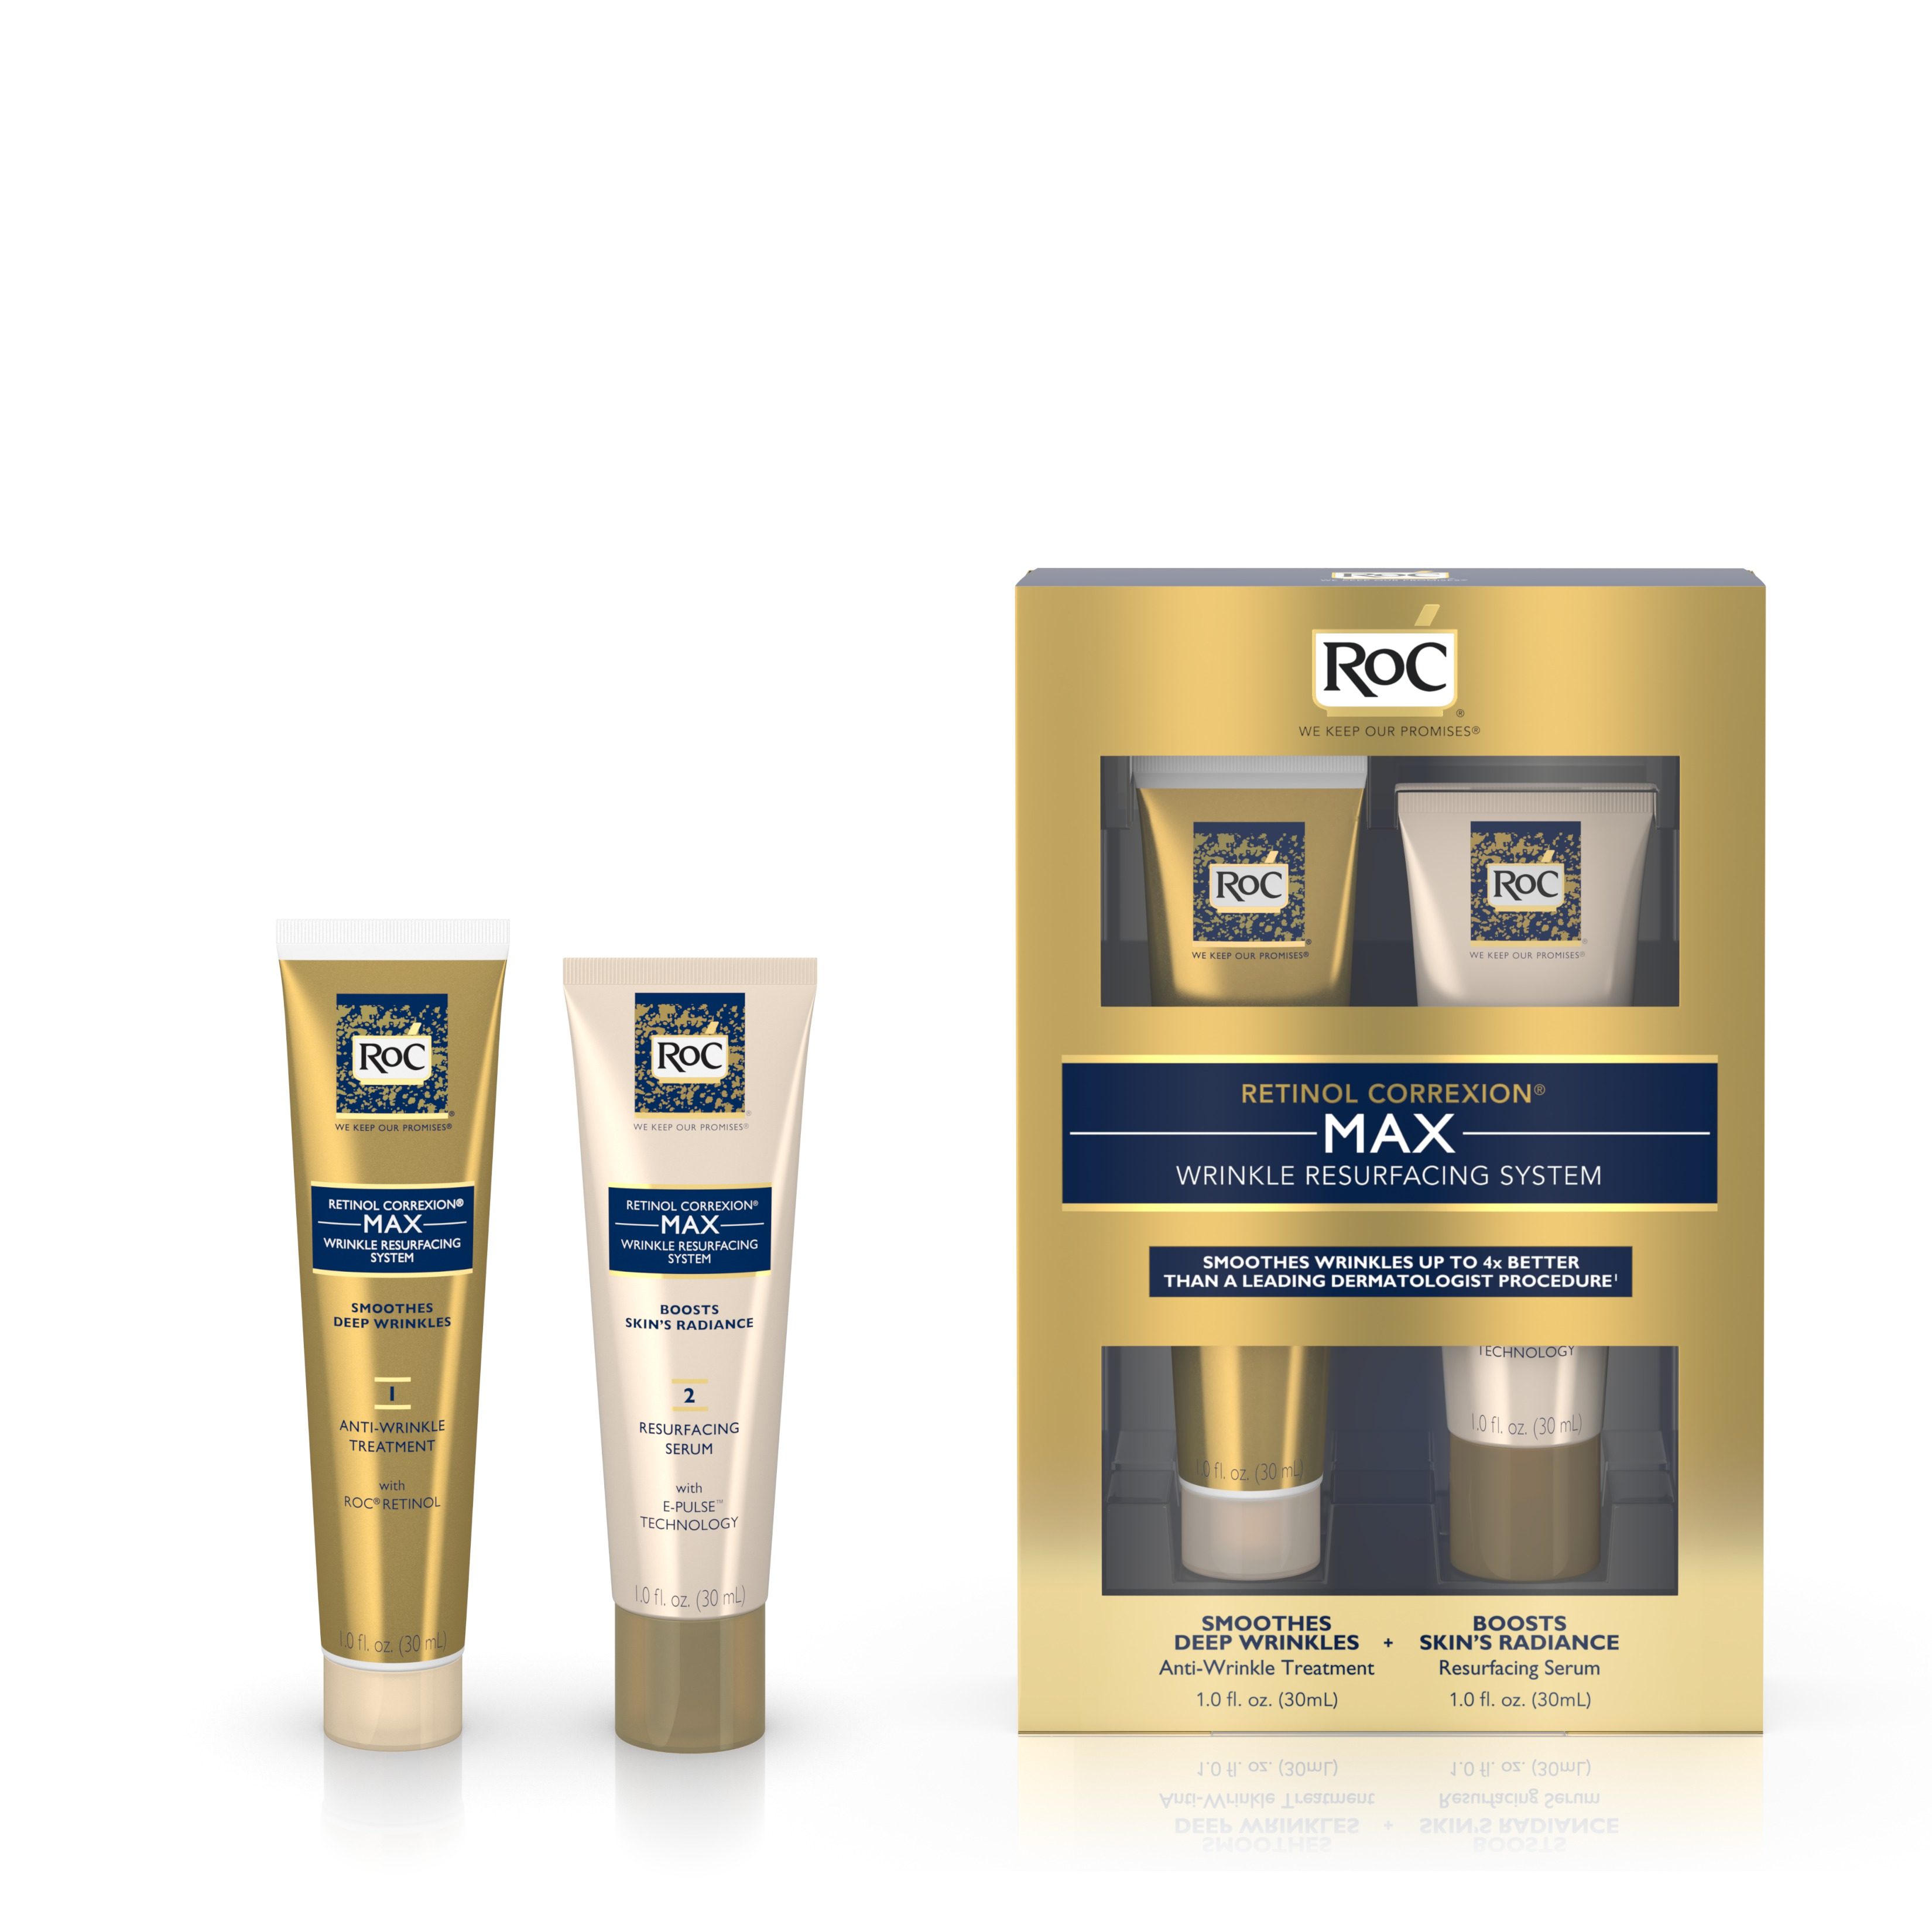 Roc Retinol Correxion Max Wrinkle Resurfacing System - 1 Kit, 3 Pack 1 Set 5-in-1 Electric Wash Face Machine Facial Pore Cleaner Body Cleaning Massage Mini Skin Beauty Massager Brush